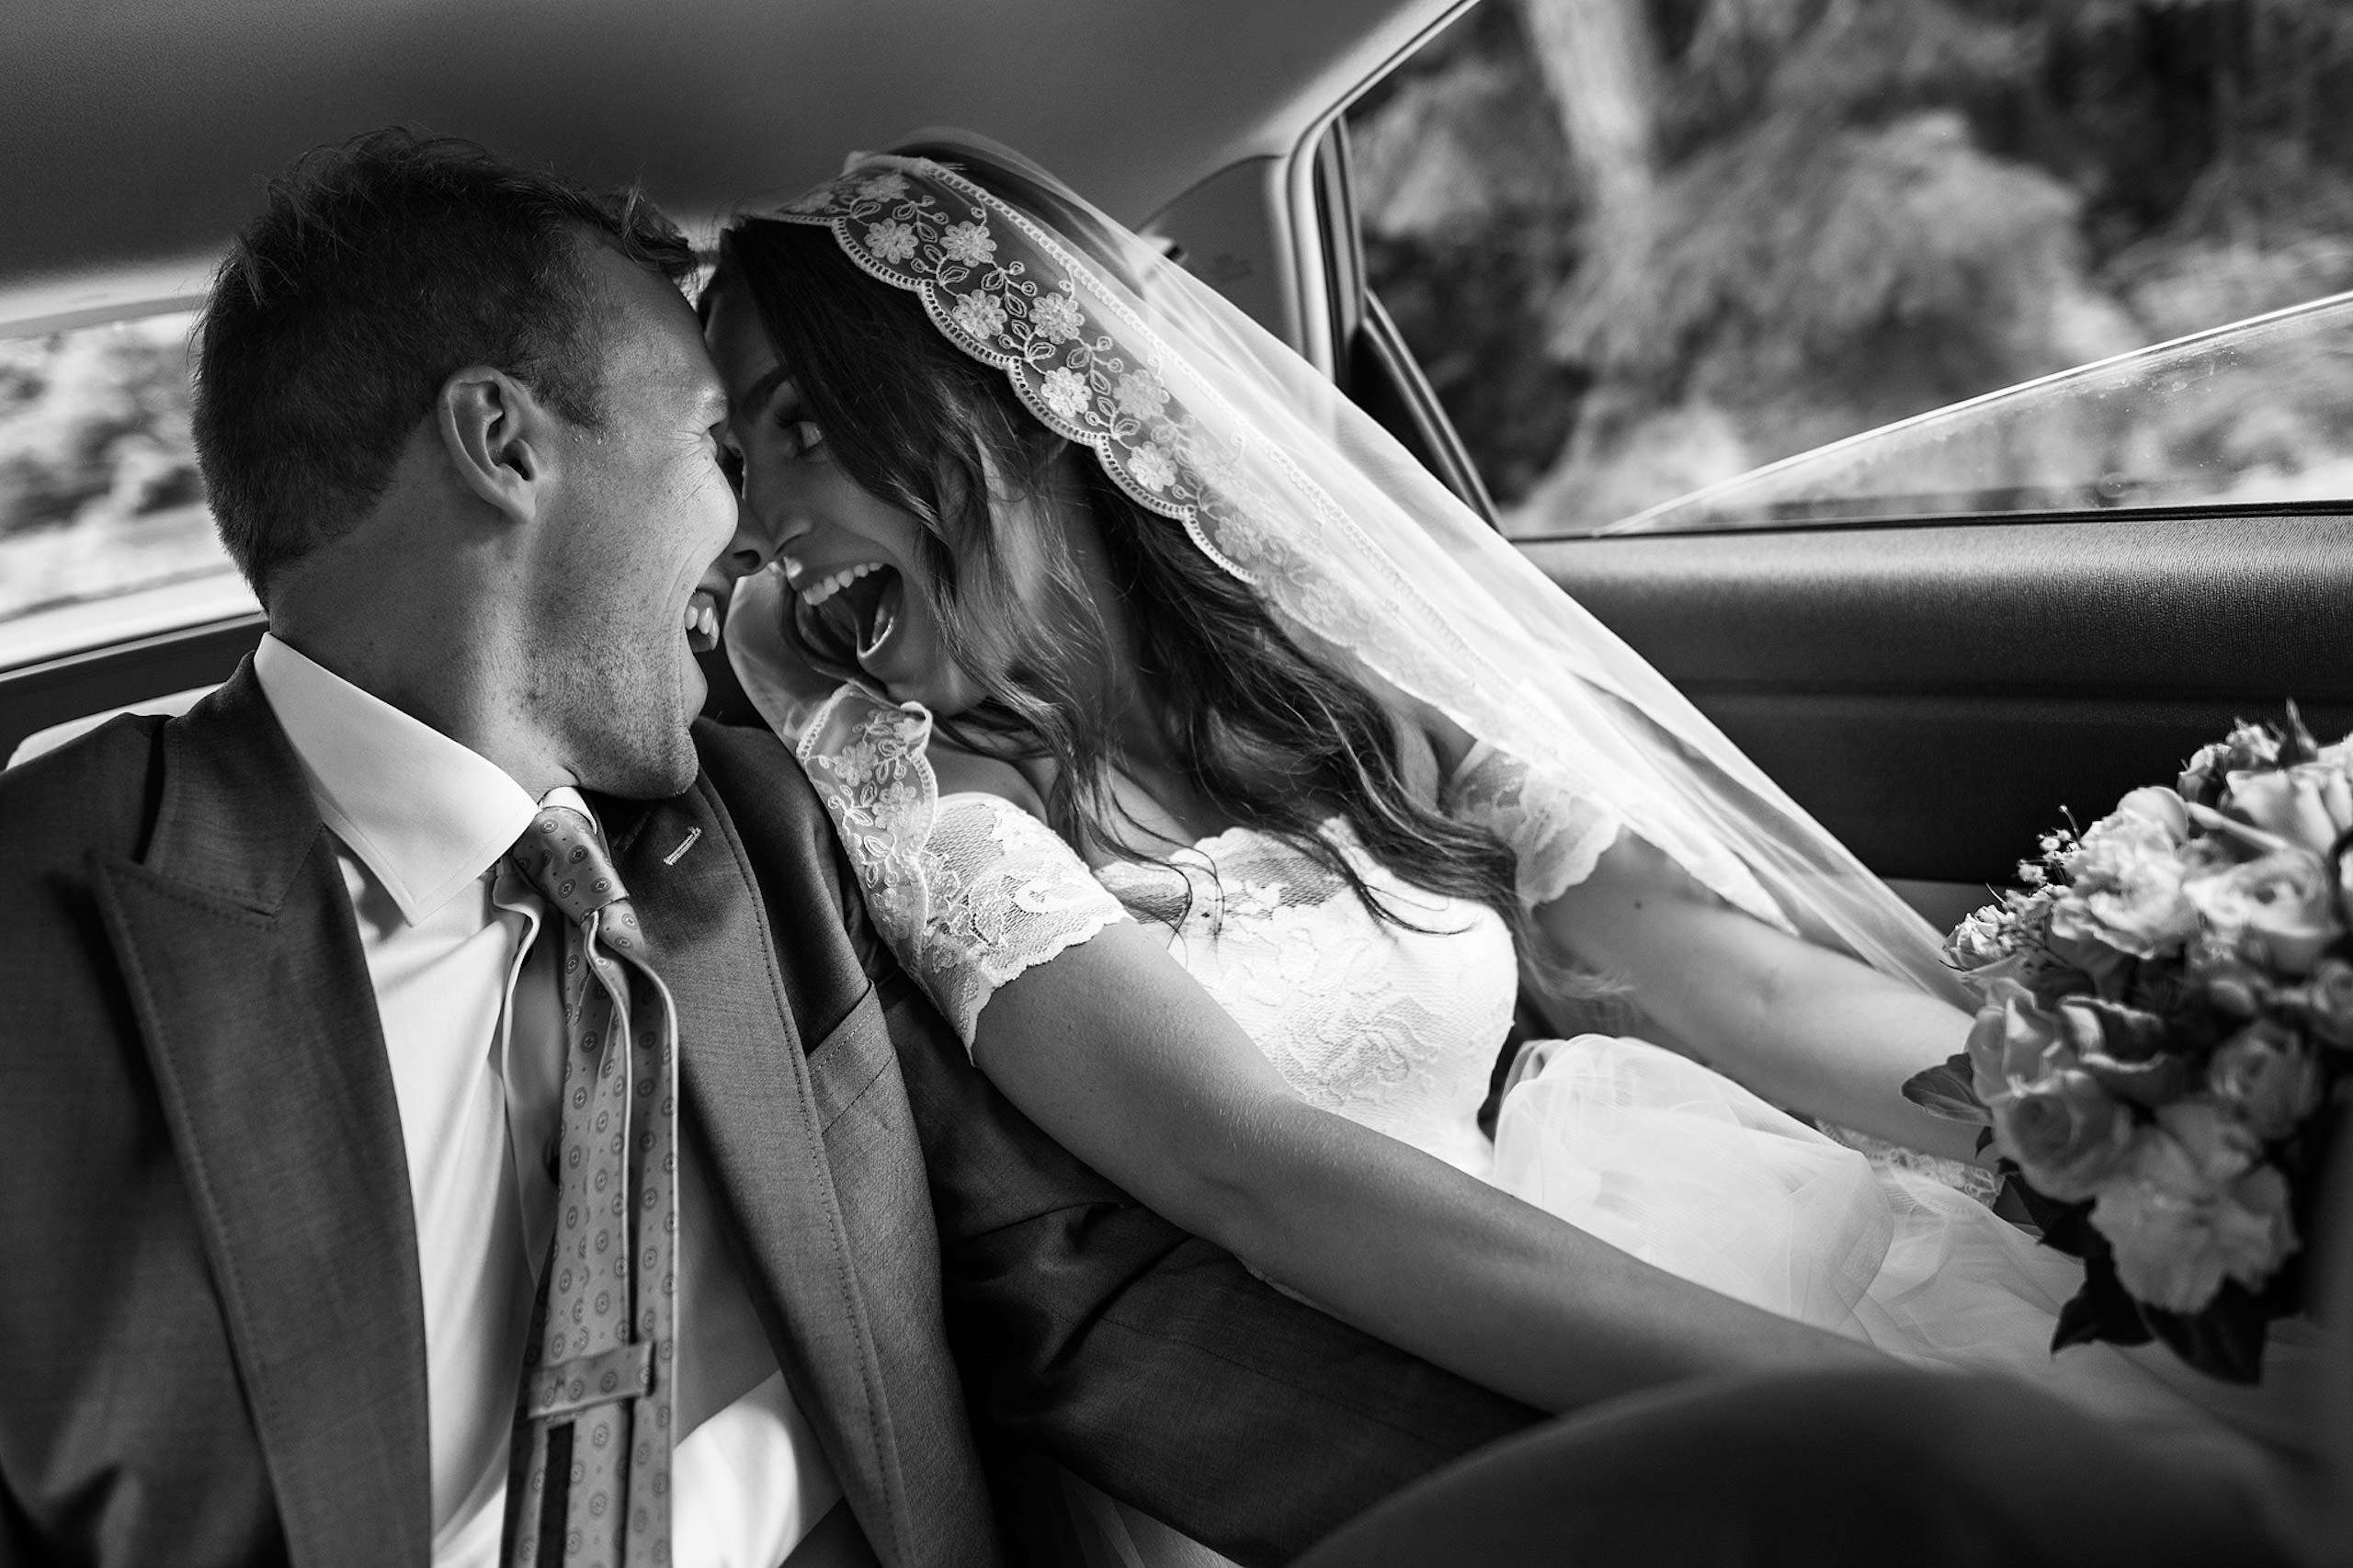 A bride and groom sitting in the back seat of a car with big smiles - Qualicum Wedding Photographer